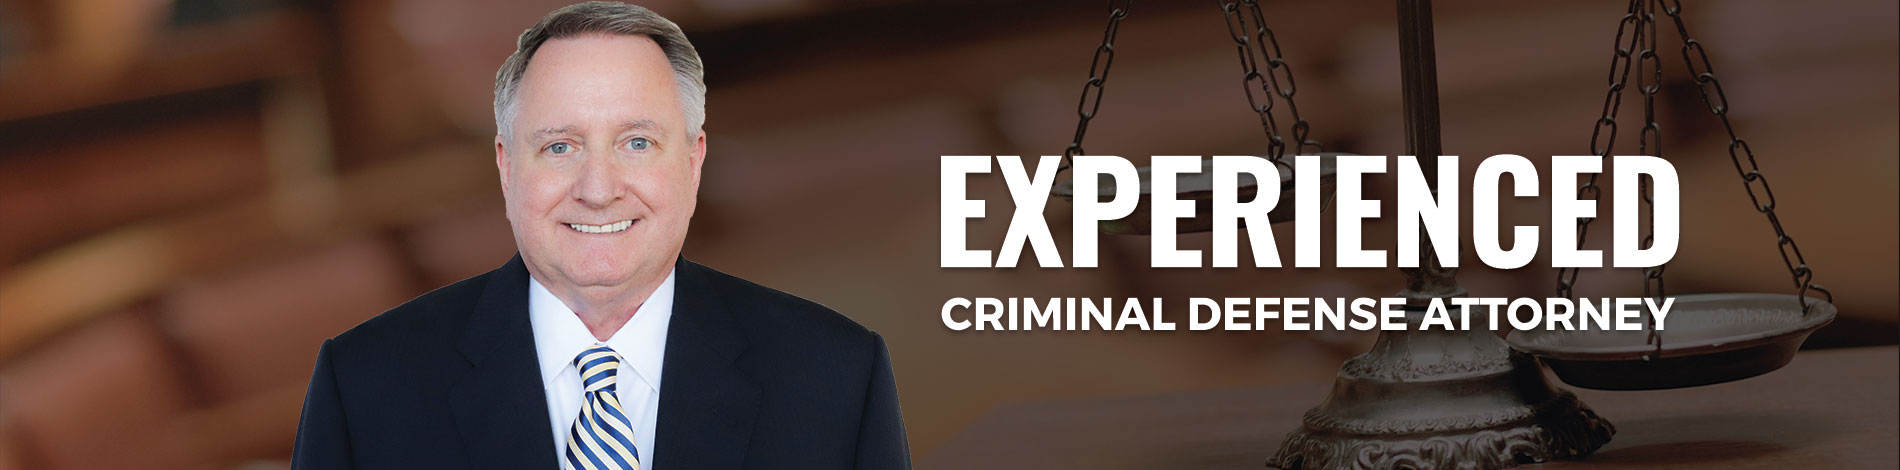 Chris Dorbandt - Experienced Criminal Defense Attorney